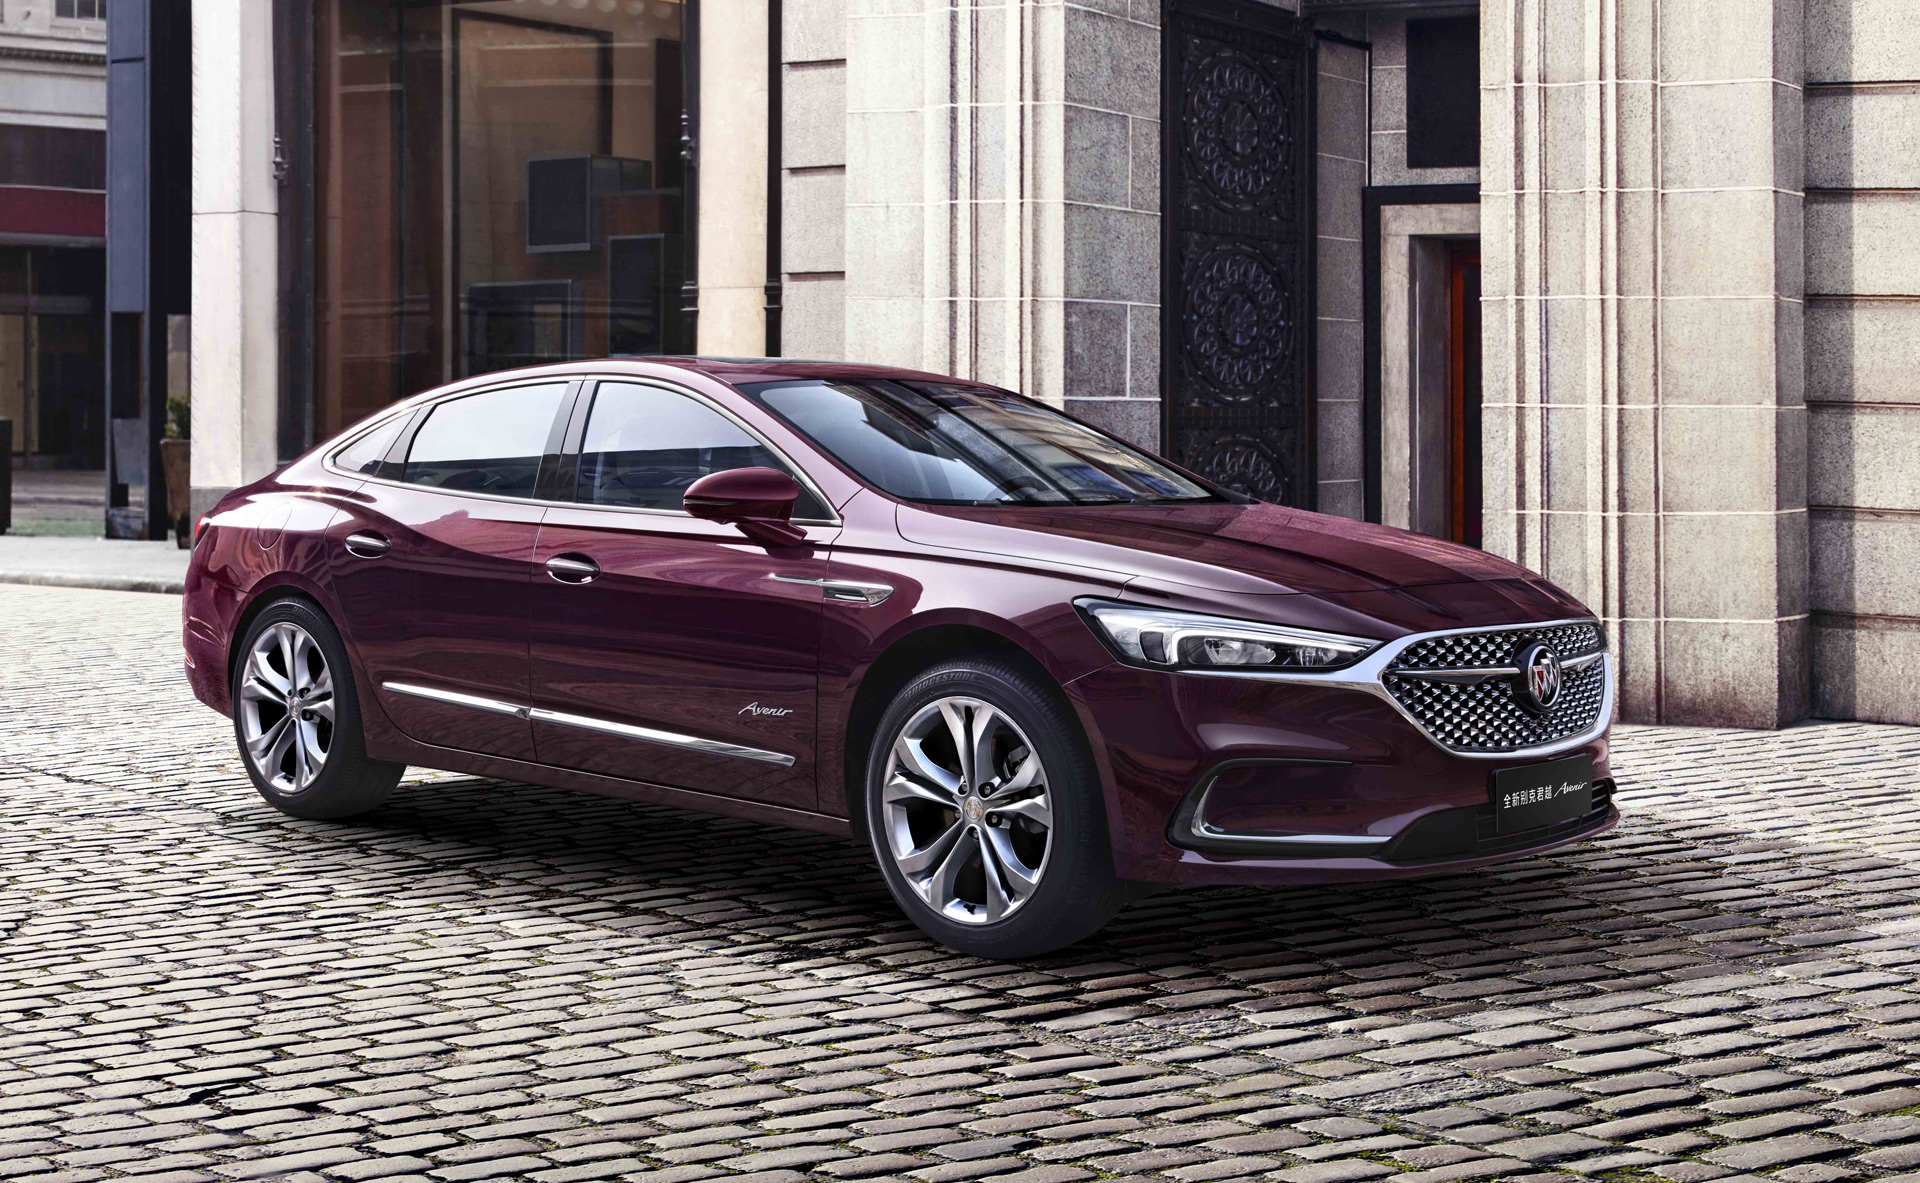 2020 Buick Lacrosse Made Handsome Just As It's Dropped In Us Show Me A 2022 Buick Lacrosse